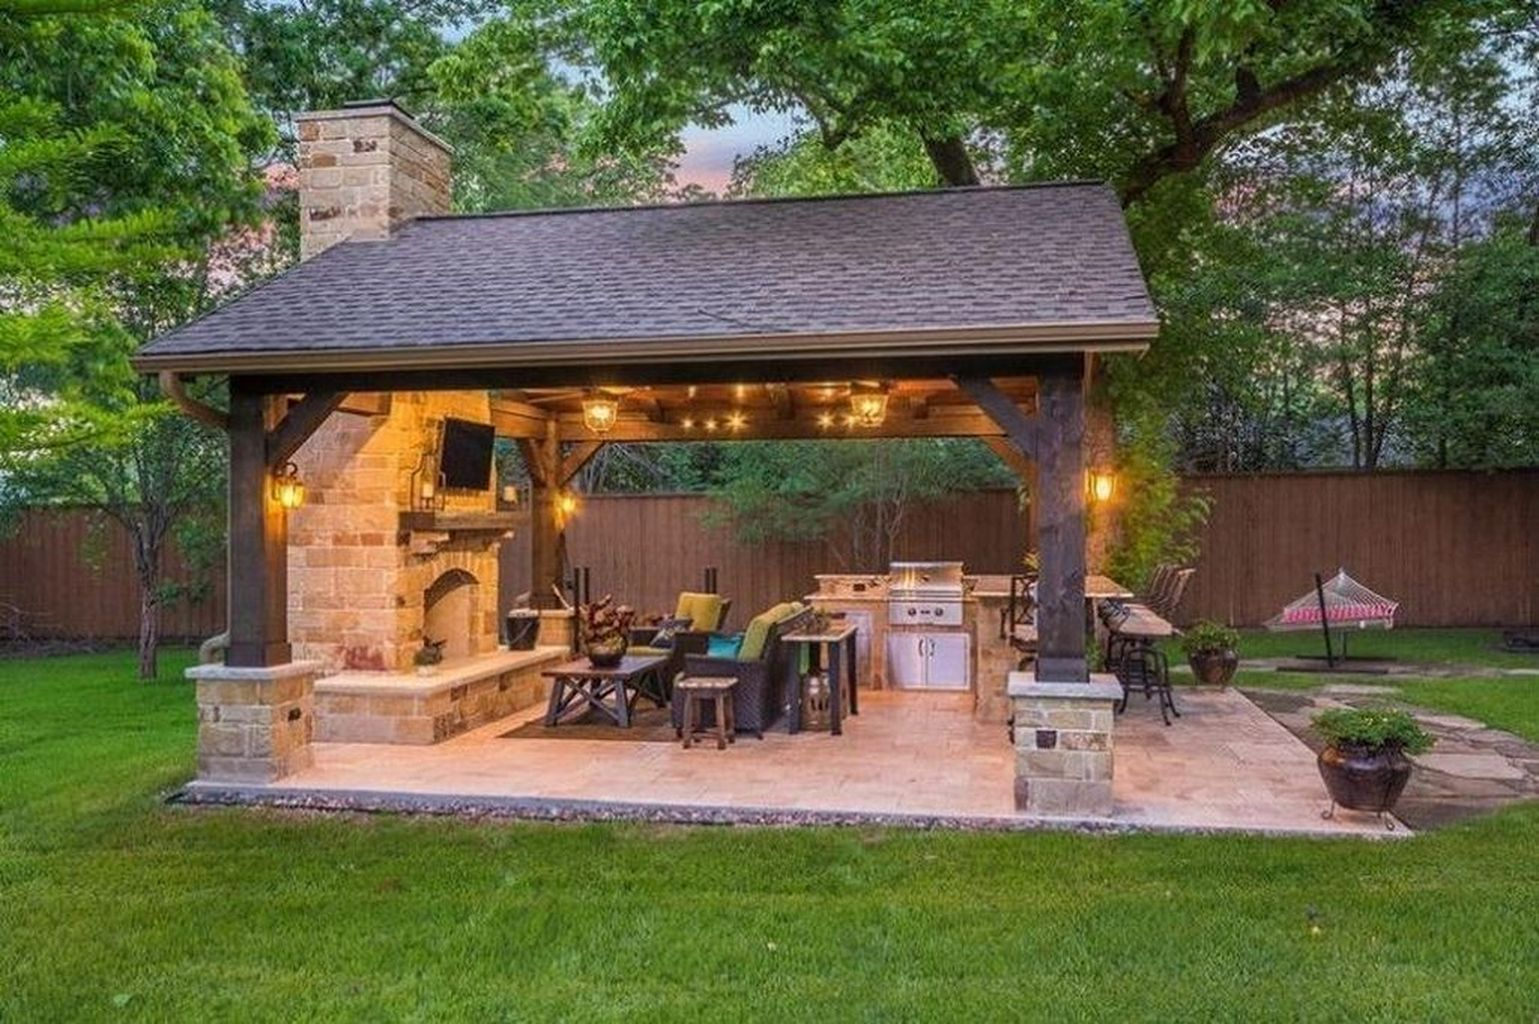 85 best outdoor kitchen and grill ideas for summer backyard barbeque backyard pavilion gazebo on outdoor kitchen gazebo ideas id=86608